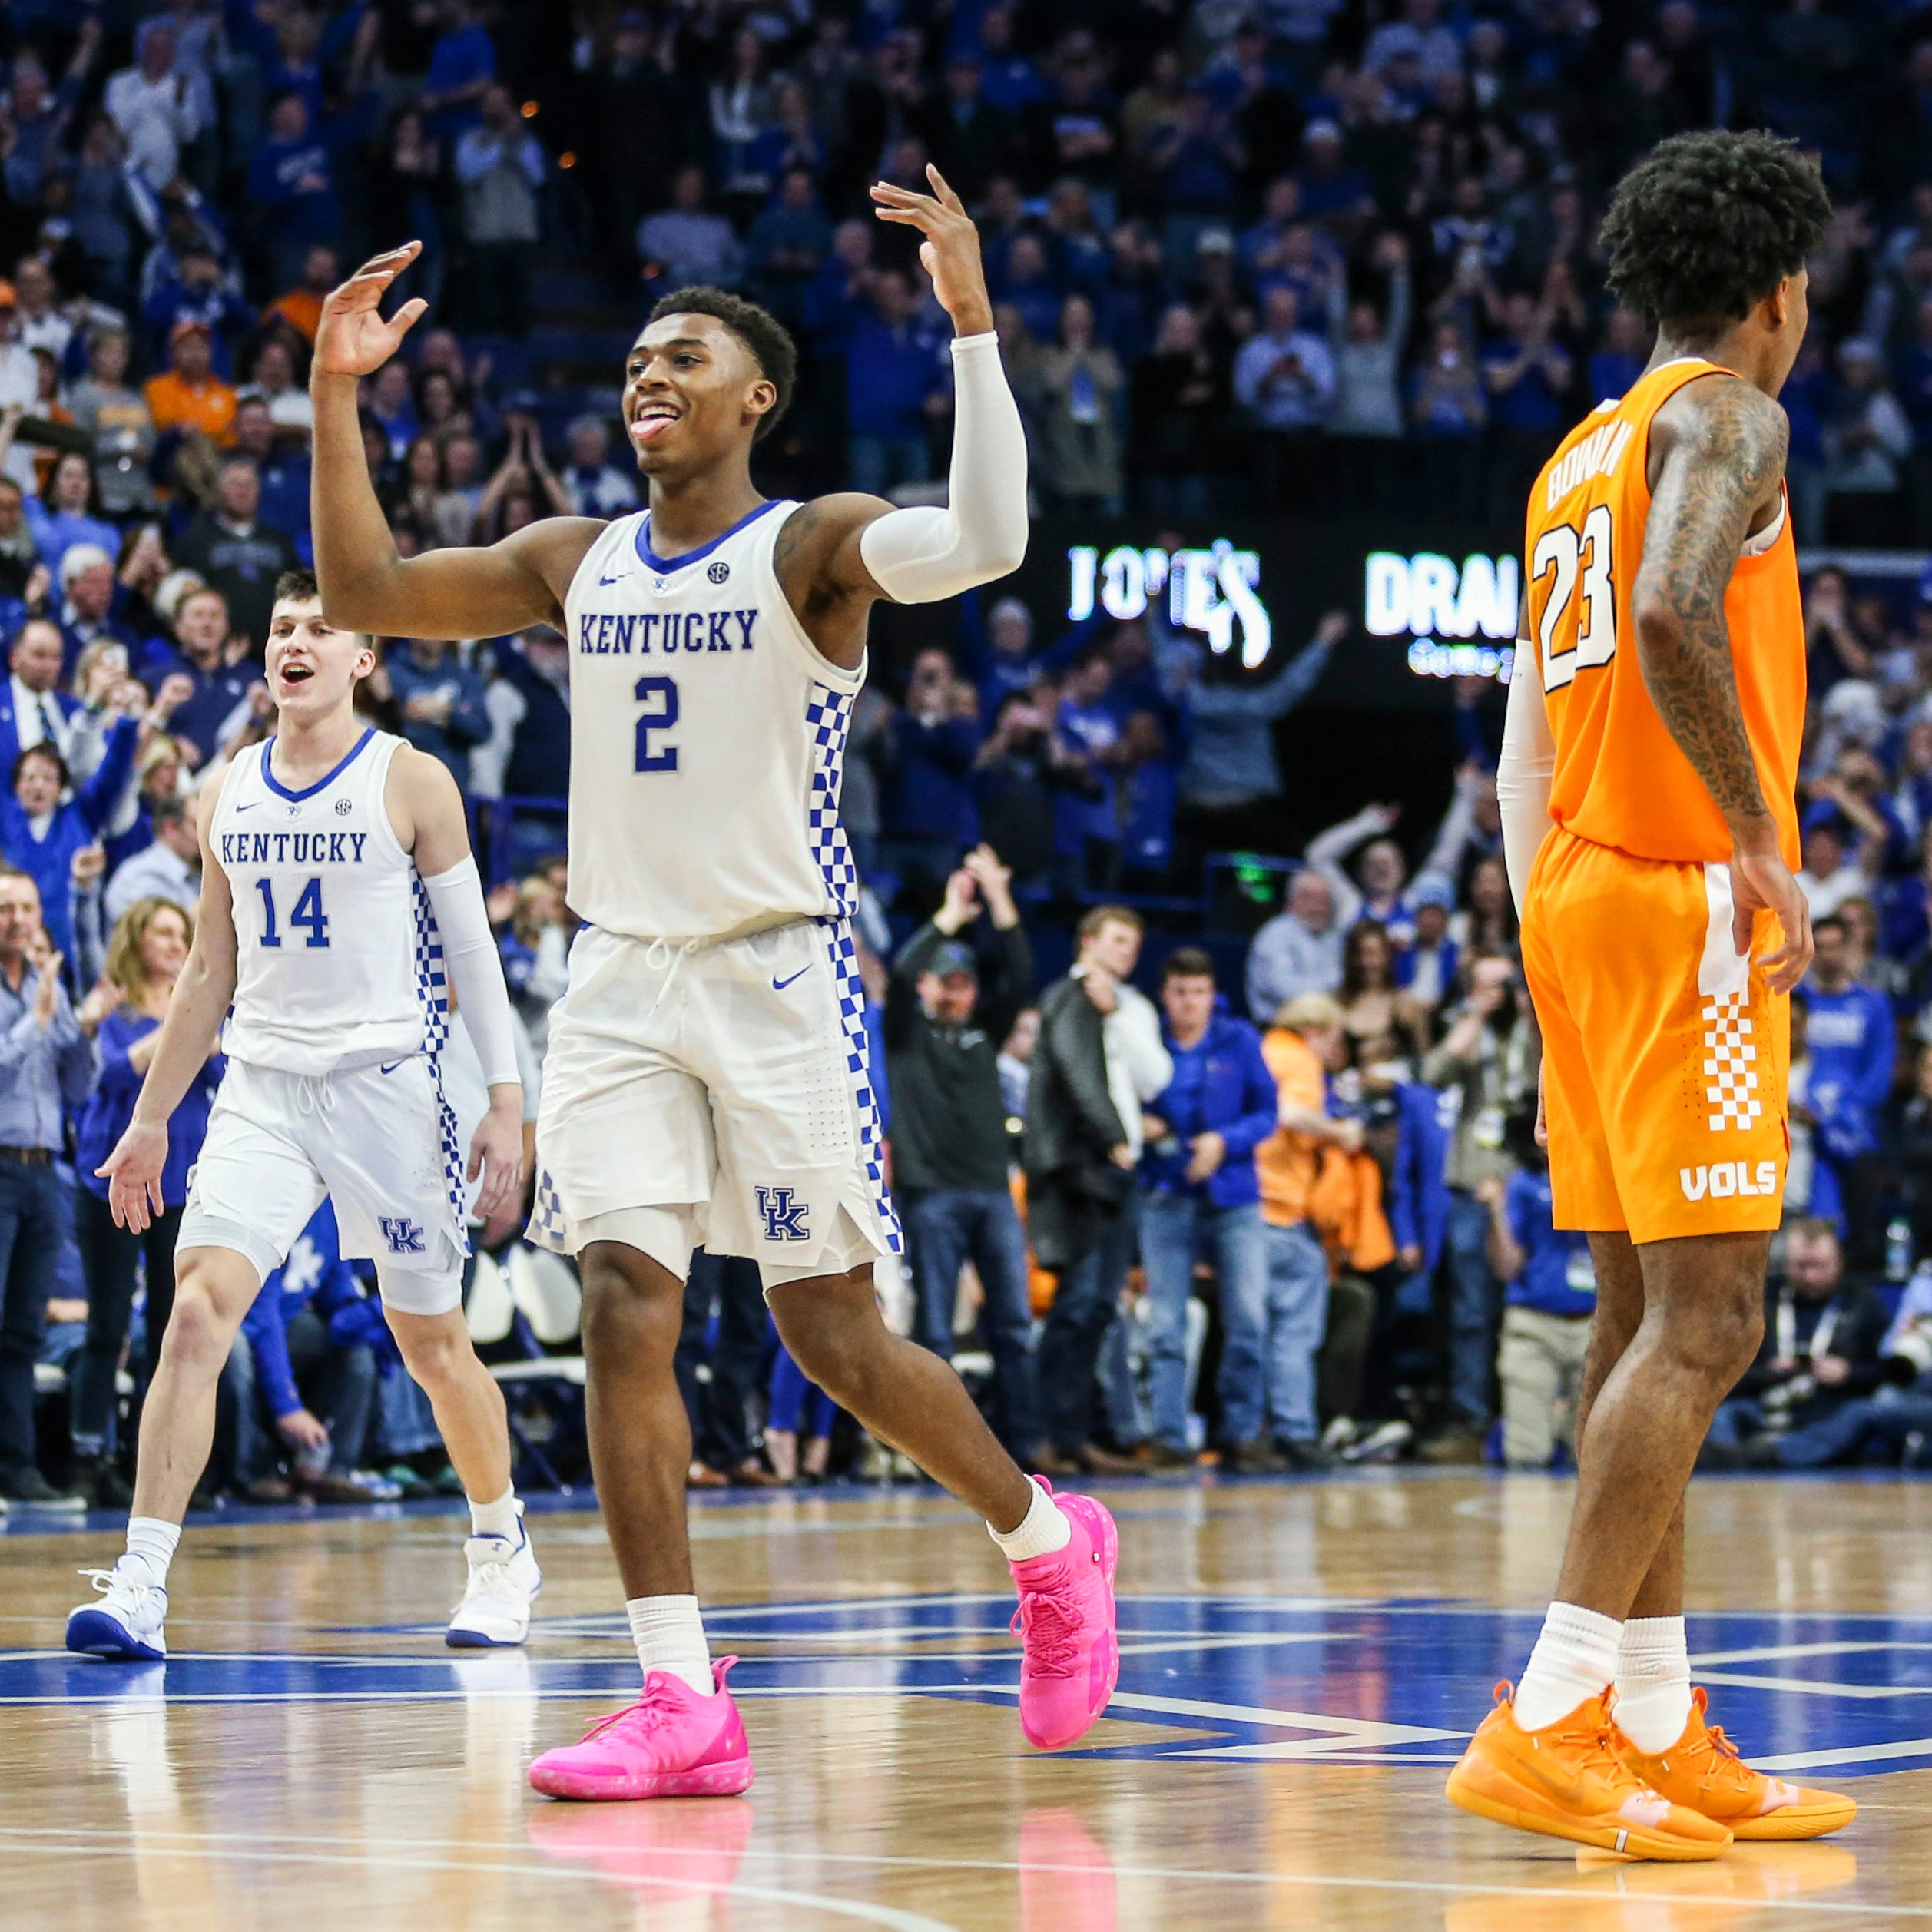 Who's overrated? UK players have different message from blowout win